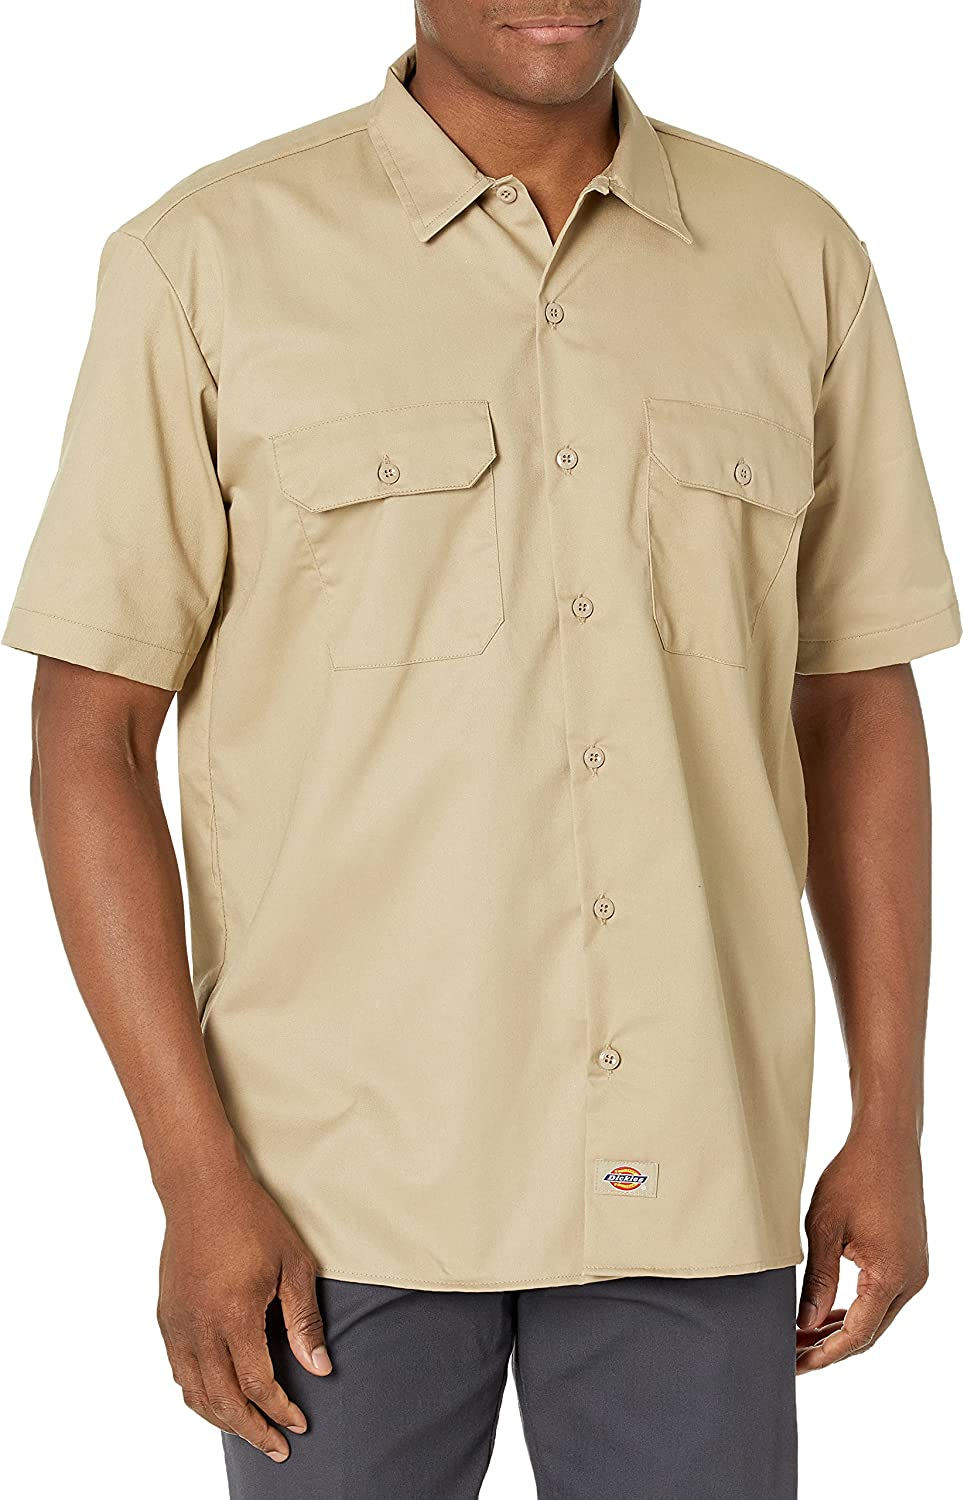 Dickies Men's Flex Cooling Twill Short Sleeve Work Shirt: Clothing, Shoes & Jewelry